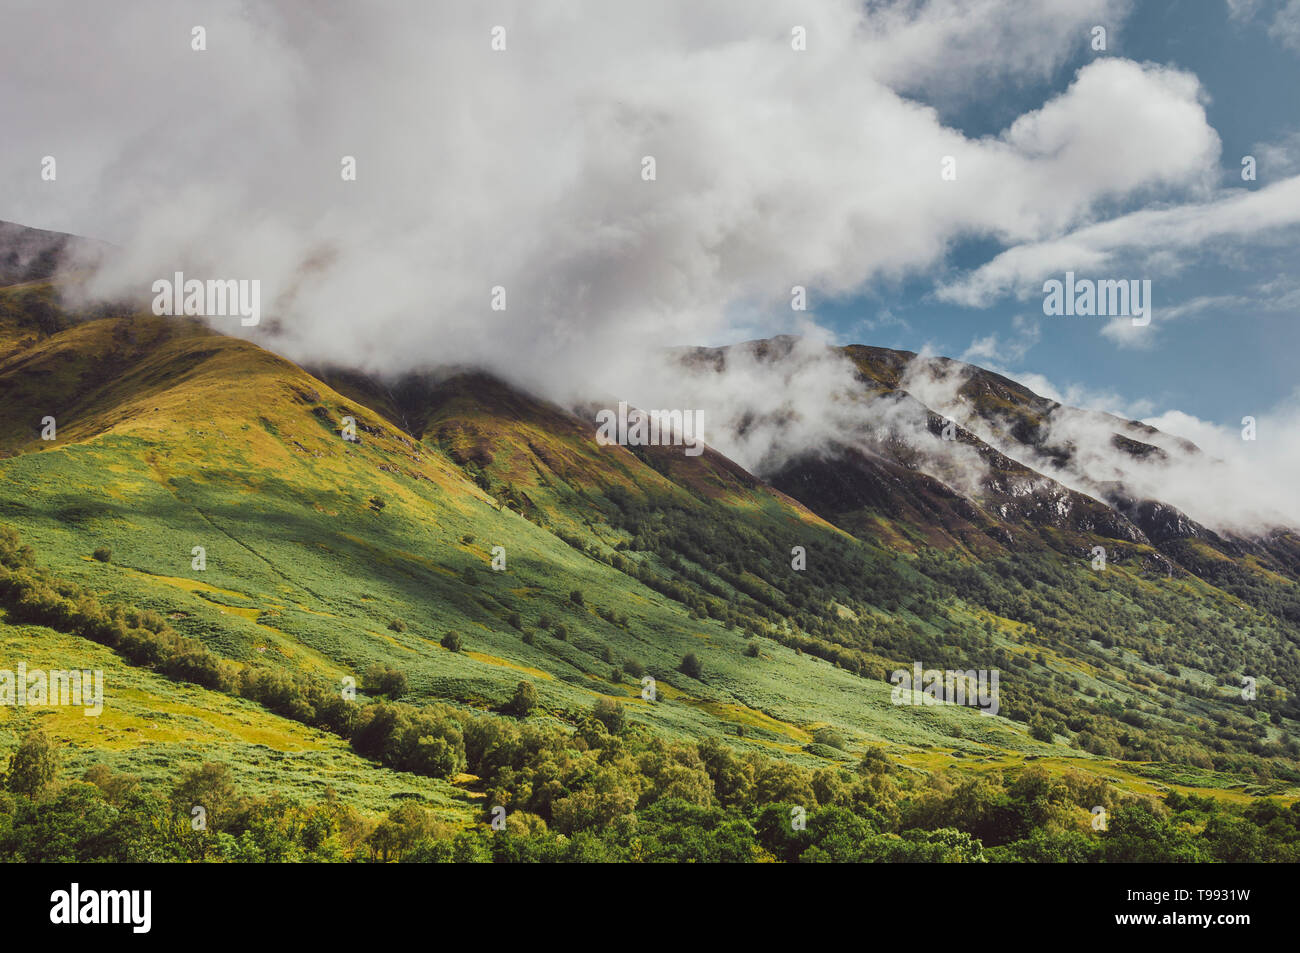 Montagnes de nuages, Glenfinnan, West Highland Line, Highlands, Scotland Banque D'Images